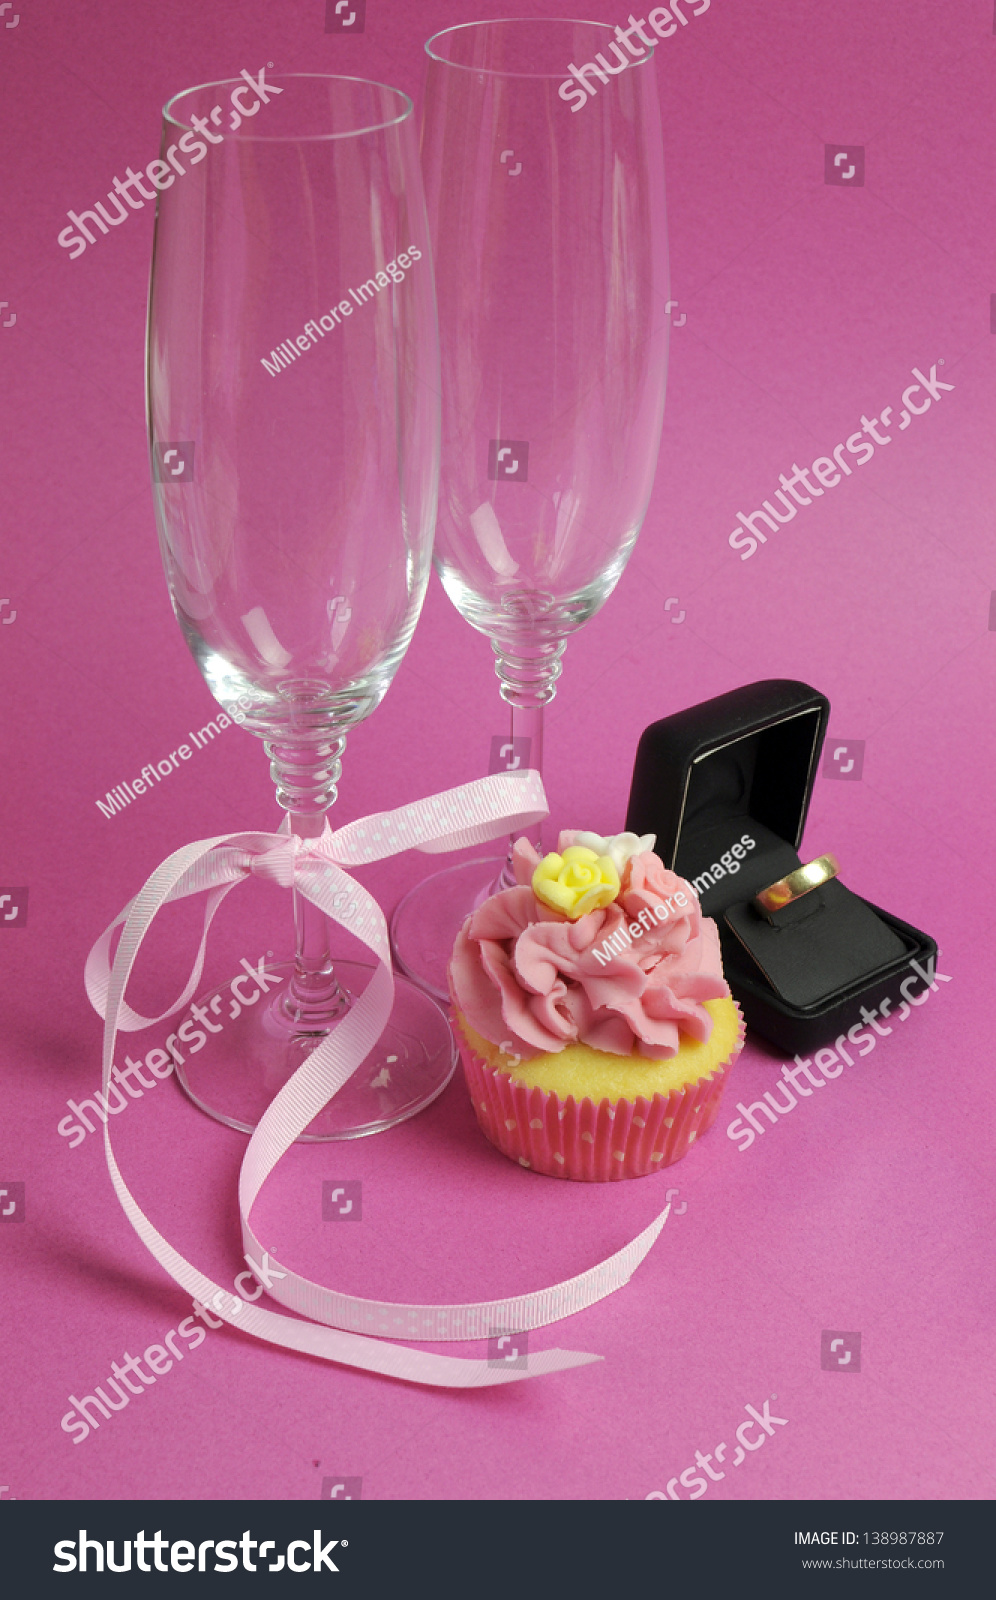 Wedding Theme Bridal Pair Champagne Flute Stock Photo (Royalty Free ...